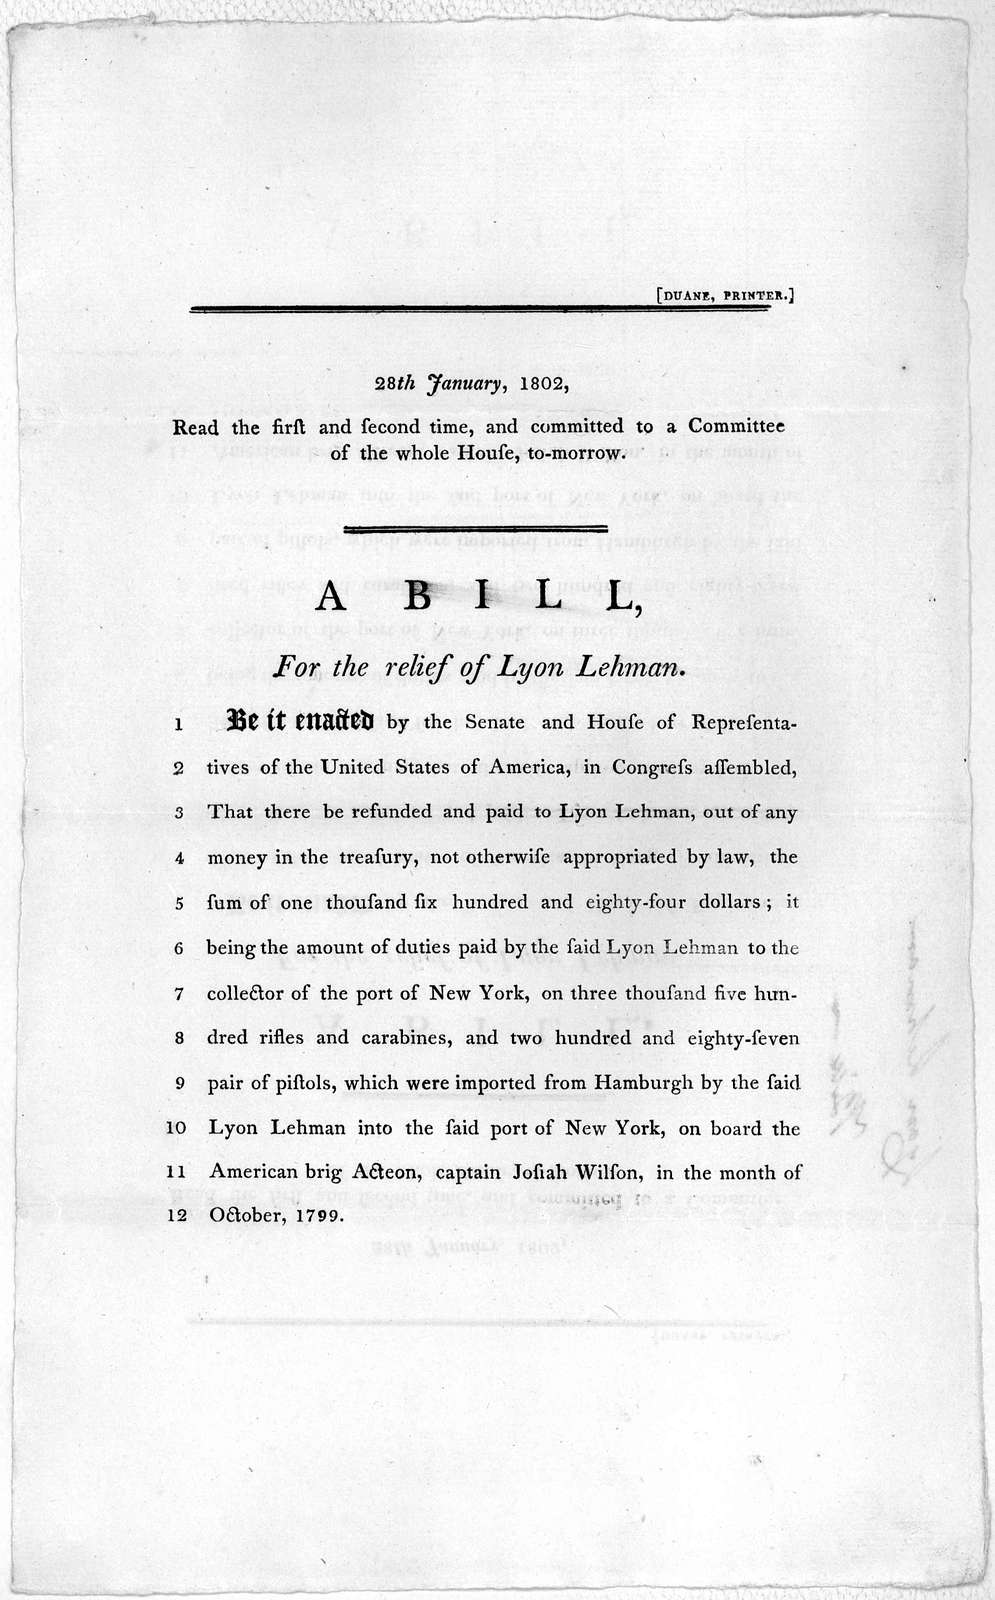 28th January, 1802. Read the first and second time, and committed to a committee of the whole House, to-morrow. A bill, for the relief of Lyon Lehman ... [Washington] Duane printer [1802].